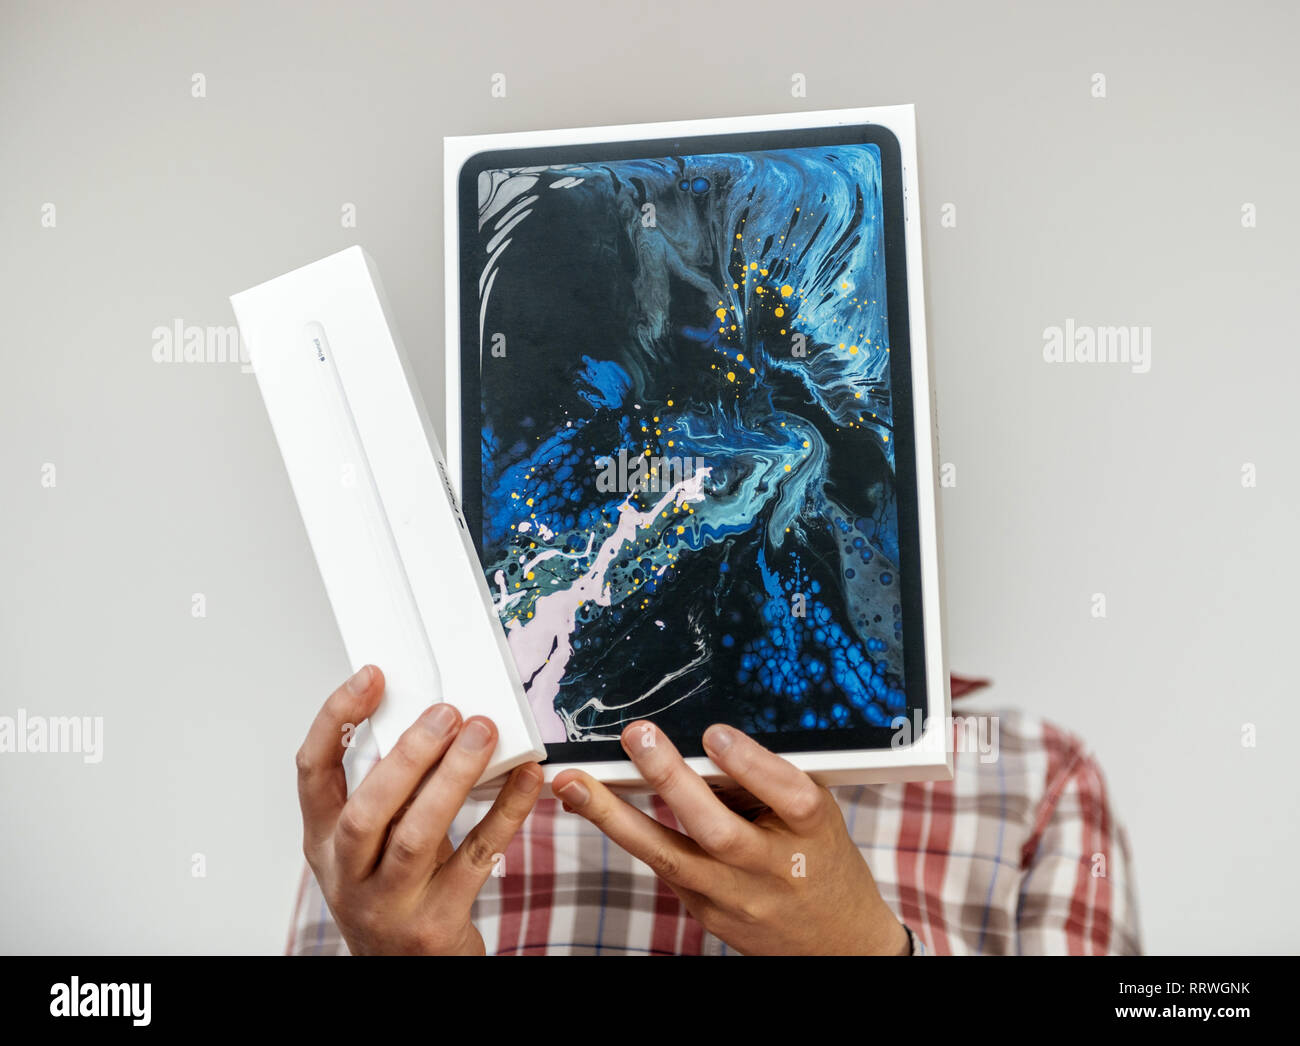 PARIS, FRANCE - DEC 2, 2018: Silhouette holding Apple Computers ipad Pro tablet and Apple Pencil 2 cardboard box - holding the cardboards in front of her face - Stock Image